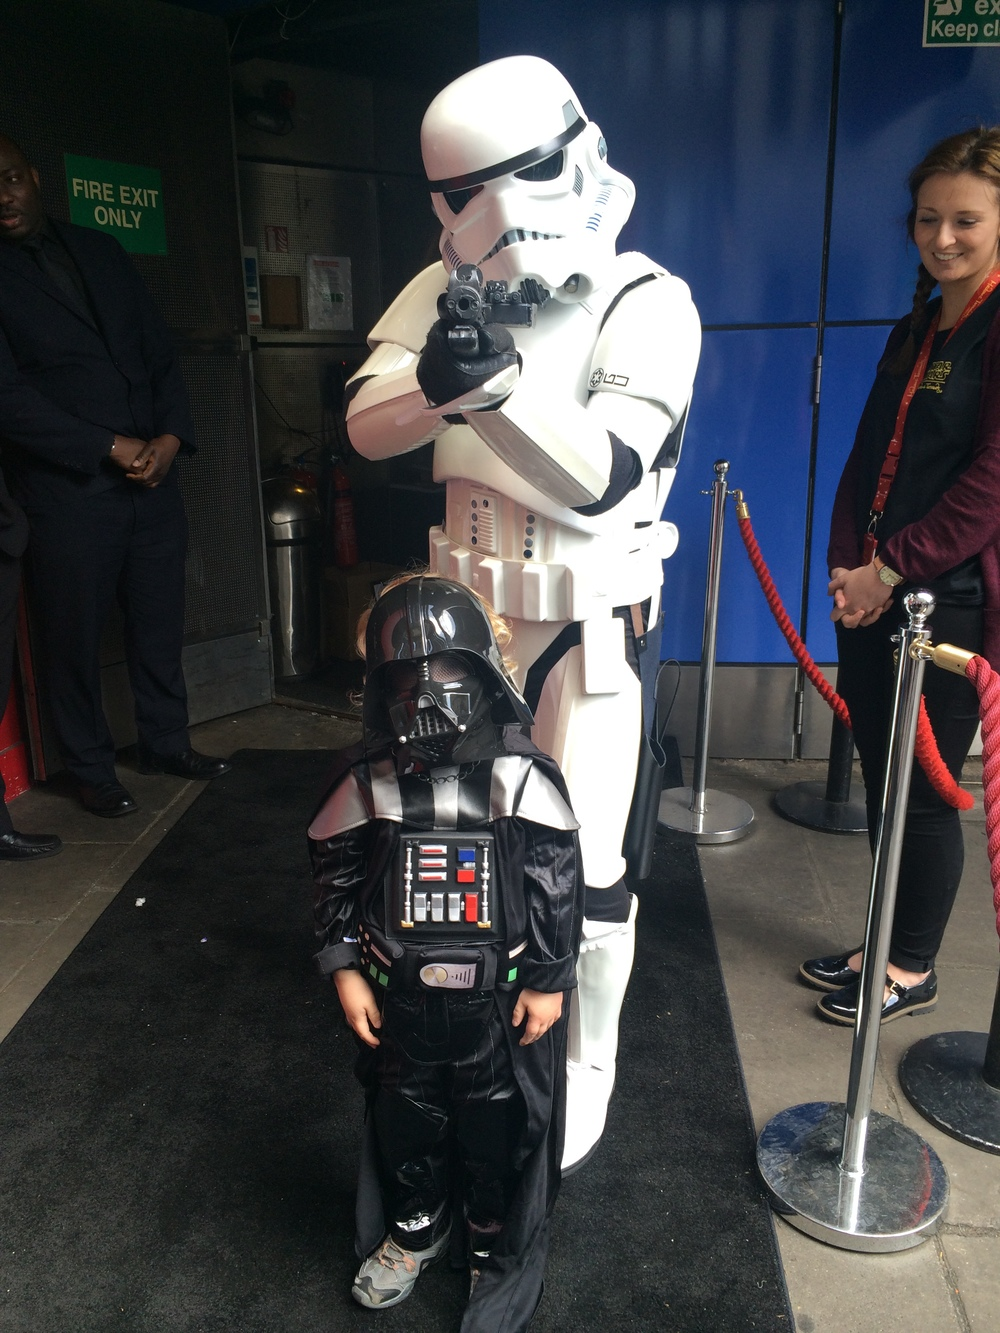 Our three foot Darth Vader (Jacob) meeting one of the Storm Troopers